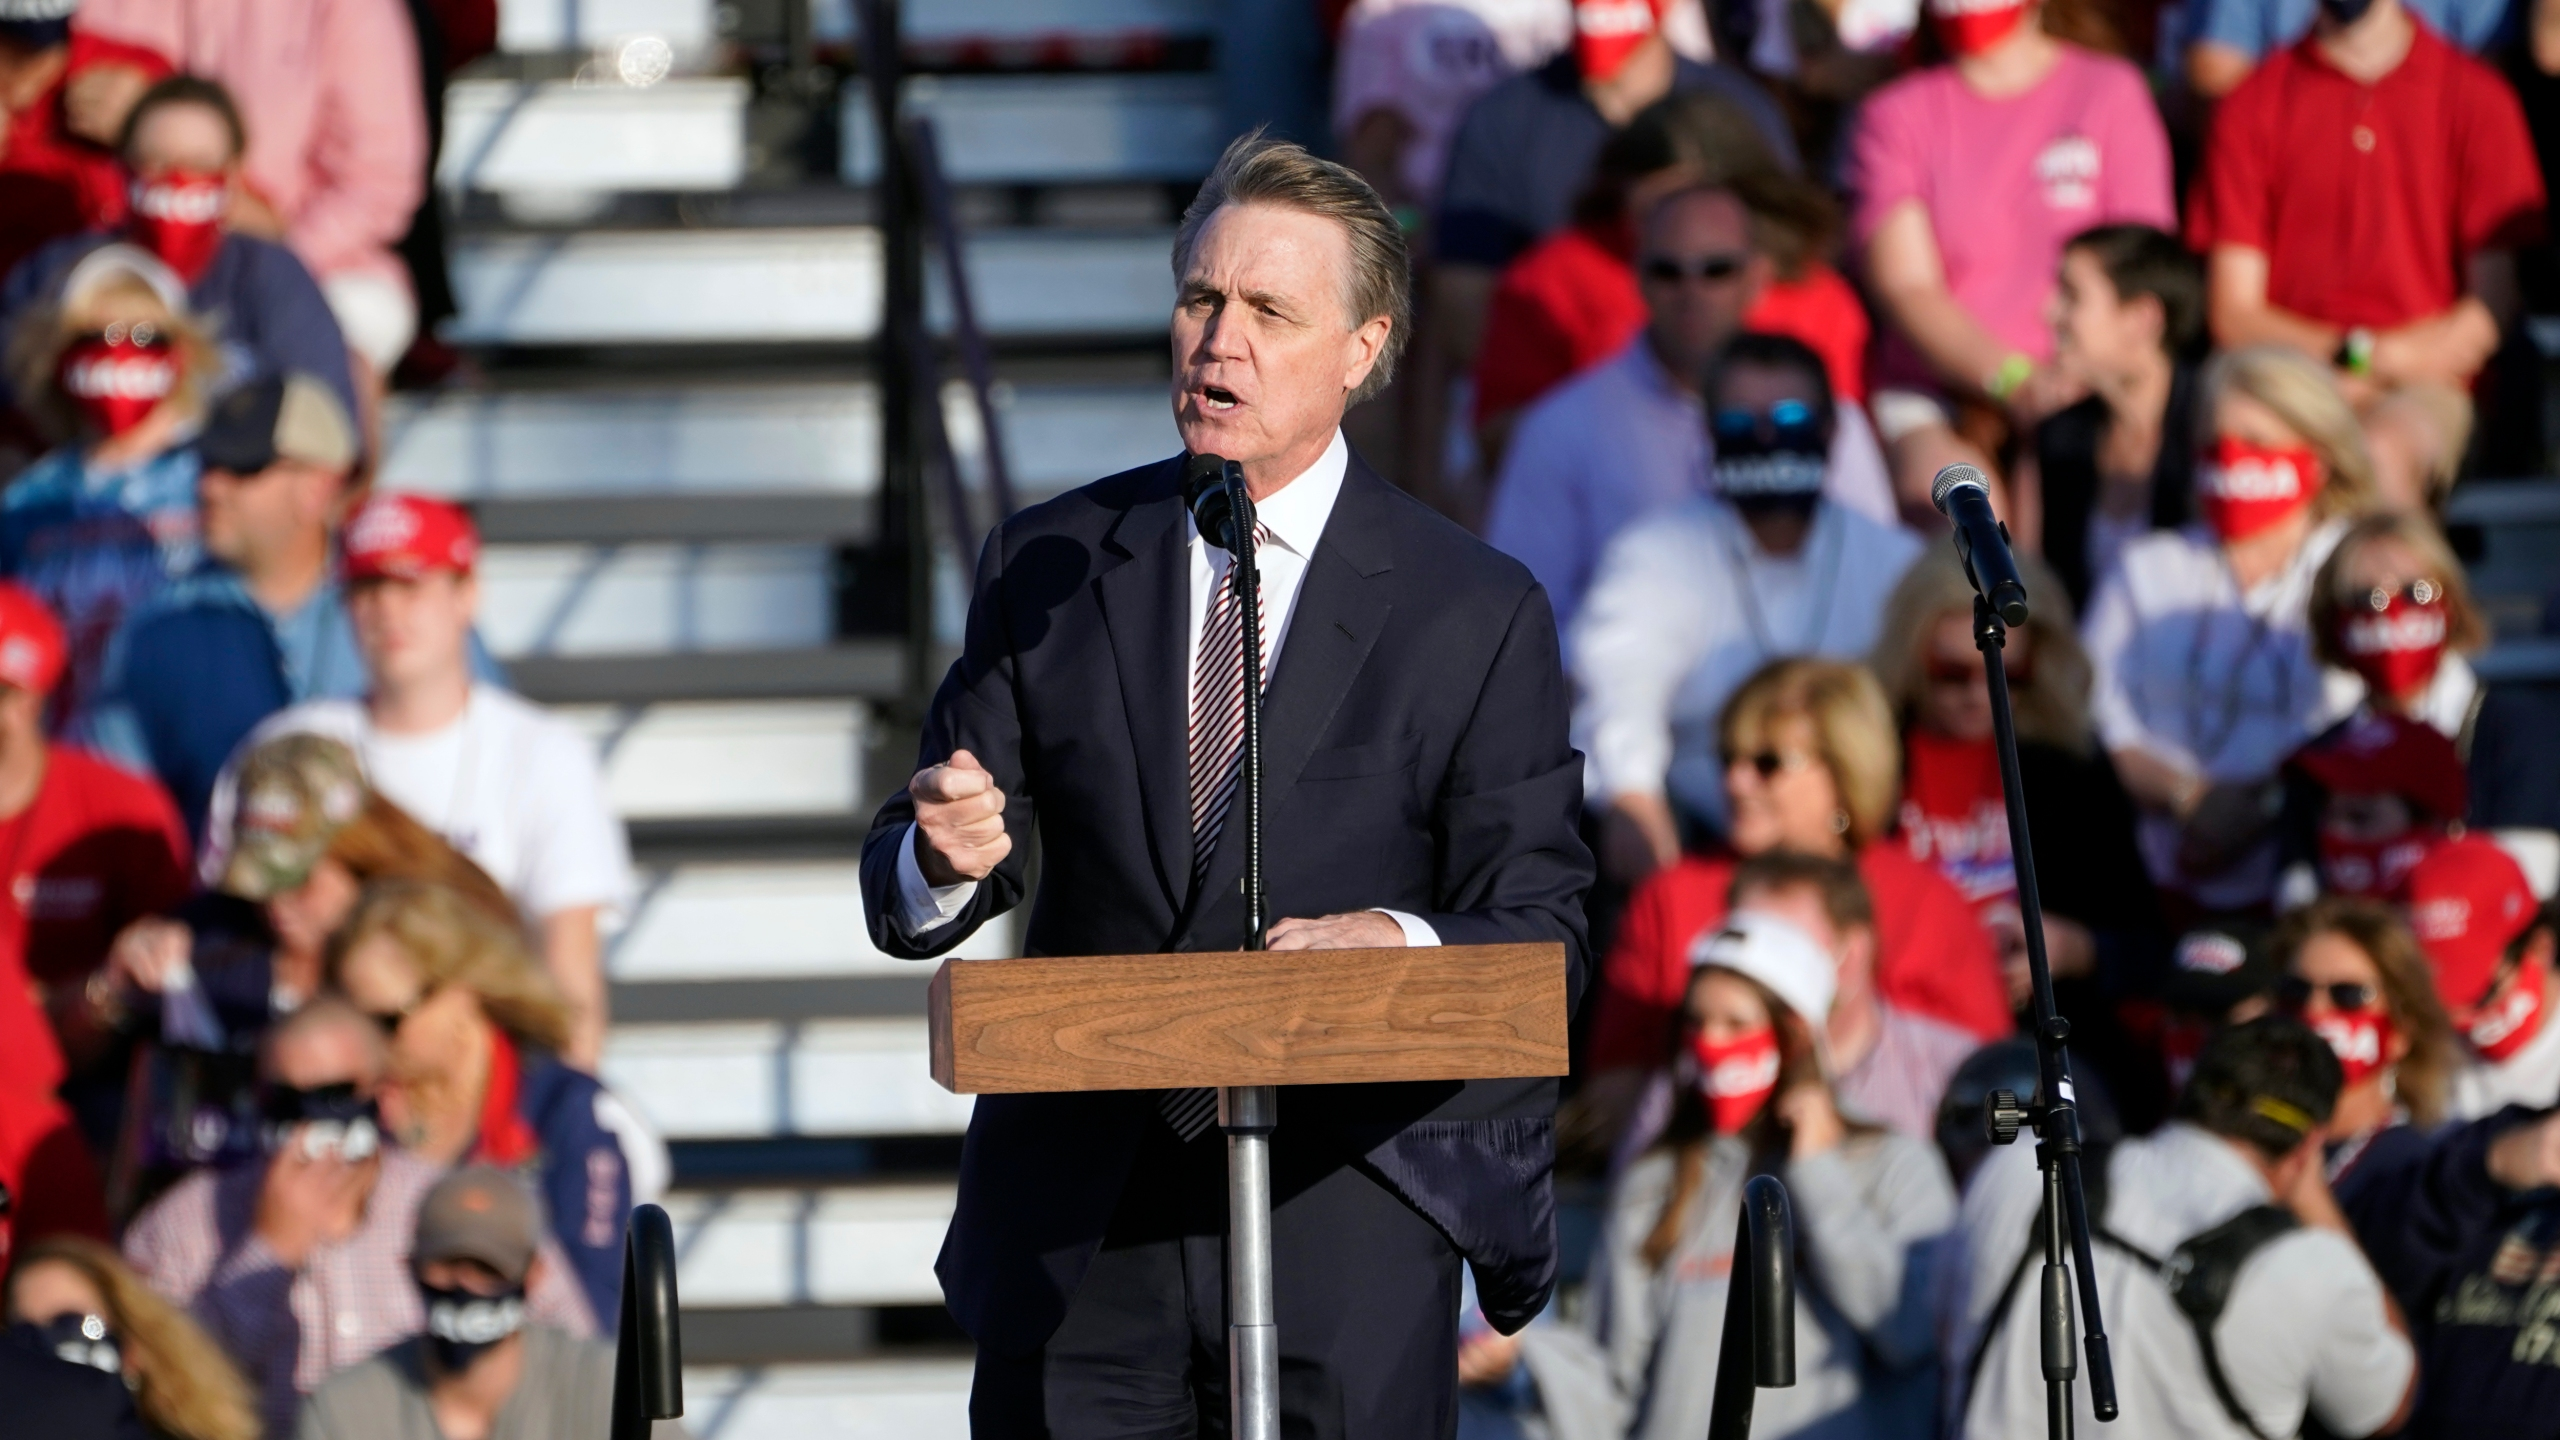 Sen. David Perdue of Georgia speaks during a campaign rally for President Donald Trump at Middle Georgia Regional Airport in Macon on Oct. 16, 2020. (John Bazemore / Associated Press)